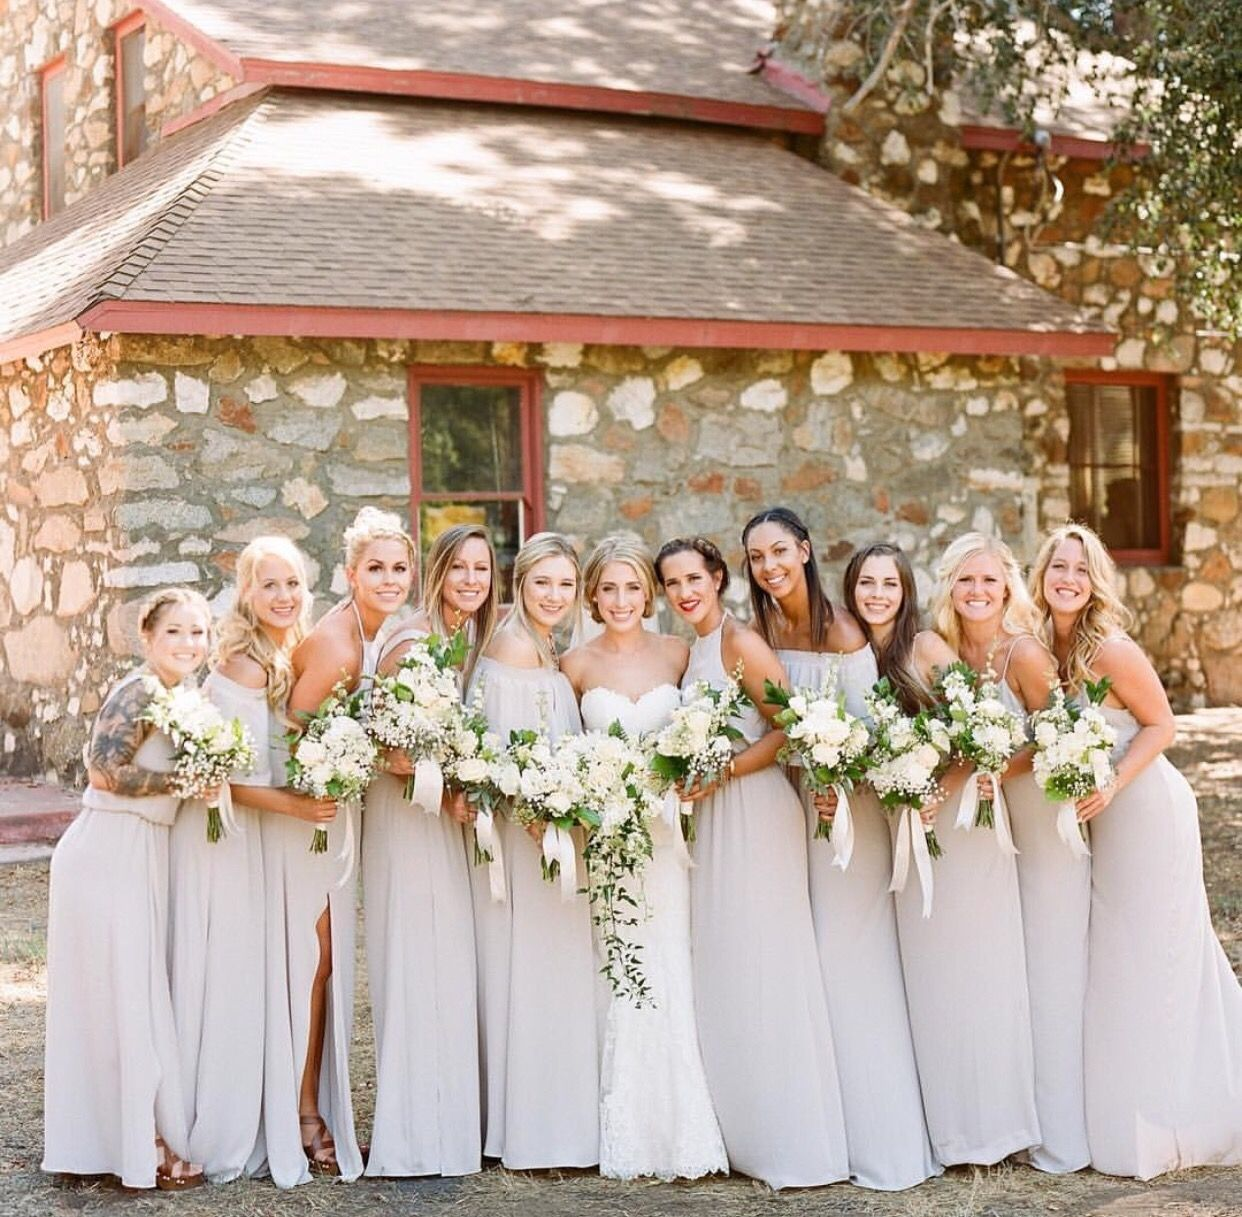 Beautiful Bride And Her Bridesmaids All Dressed In Show Me The Ring Crisp Bridesmaid Dresses